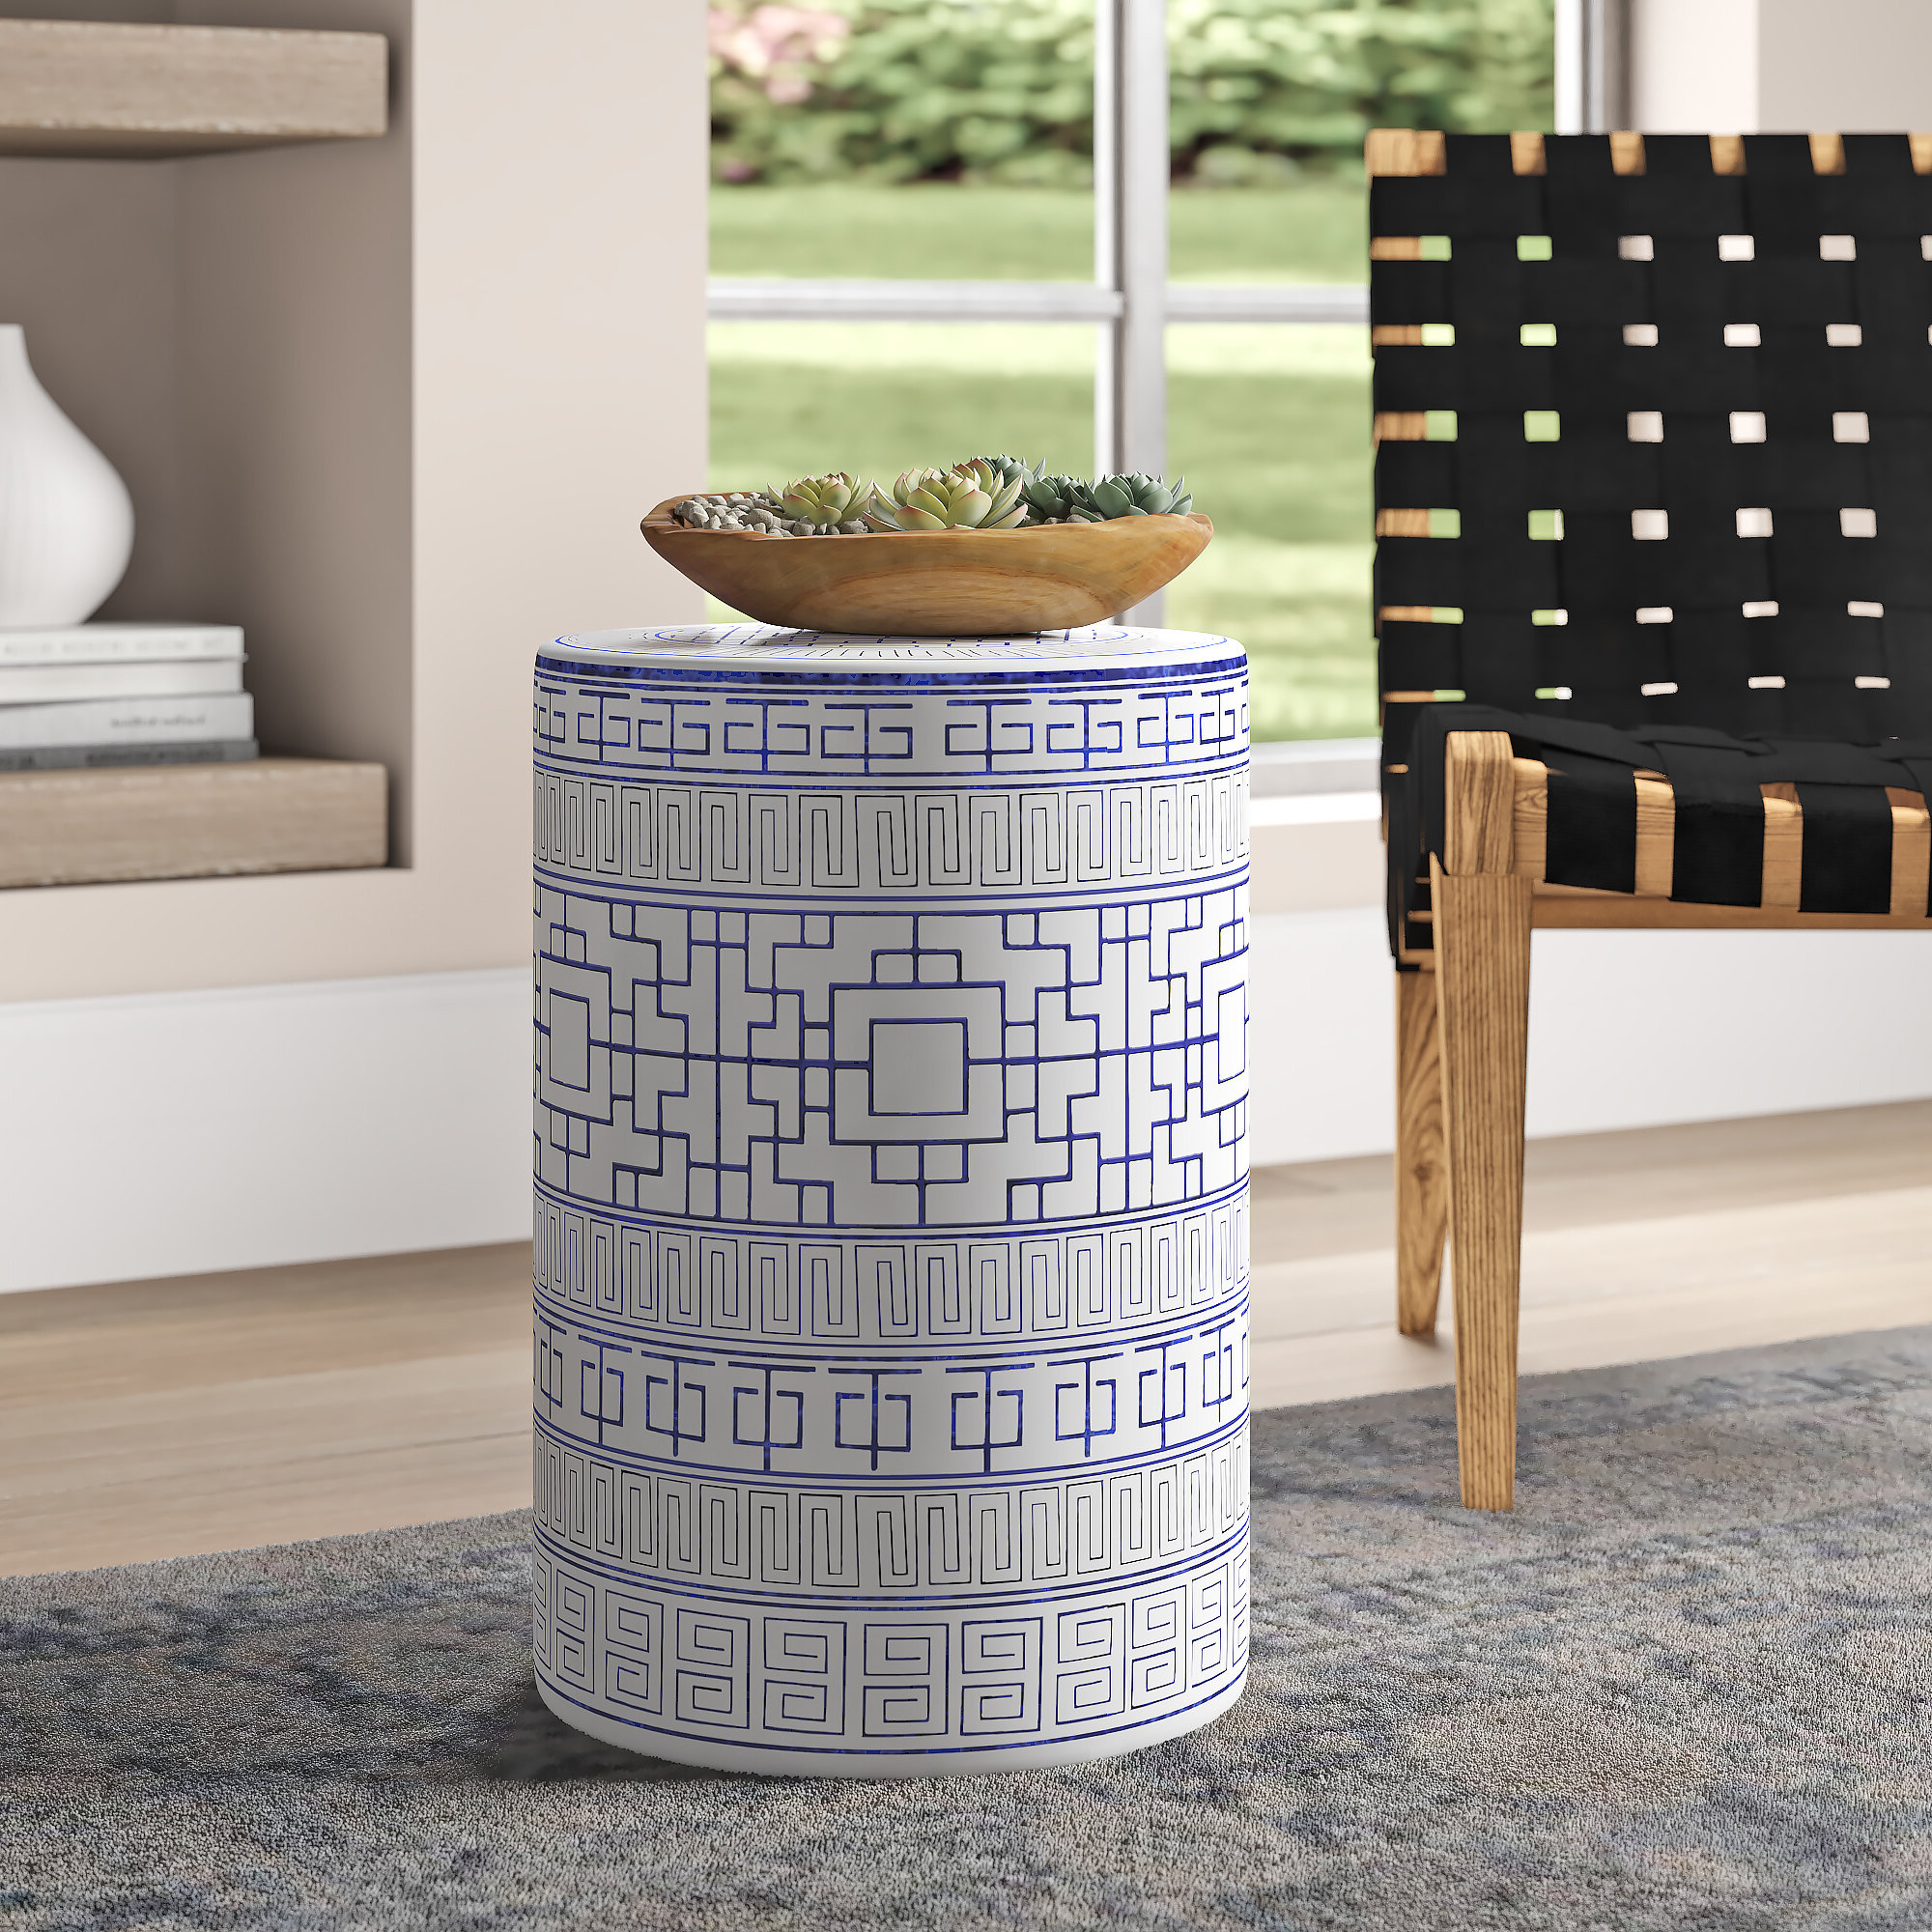 Wayfair Within Most Popular Middlet Owl Ceramic Garden Stools (View 7 of 30)